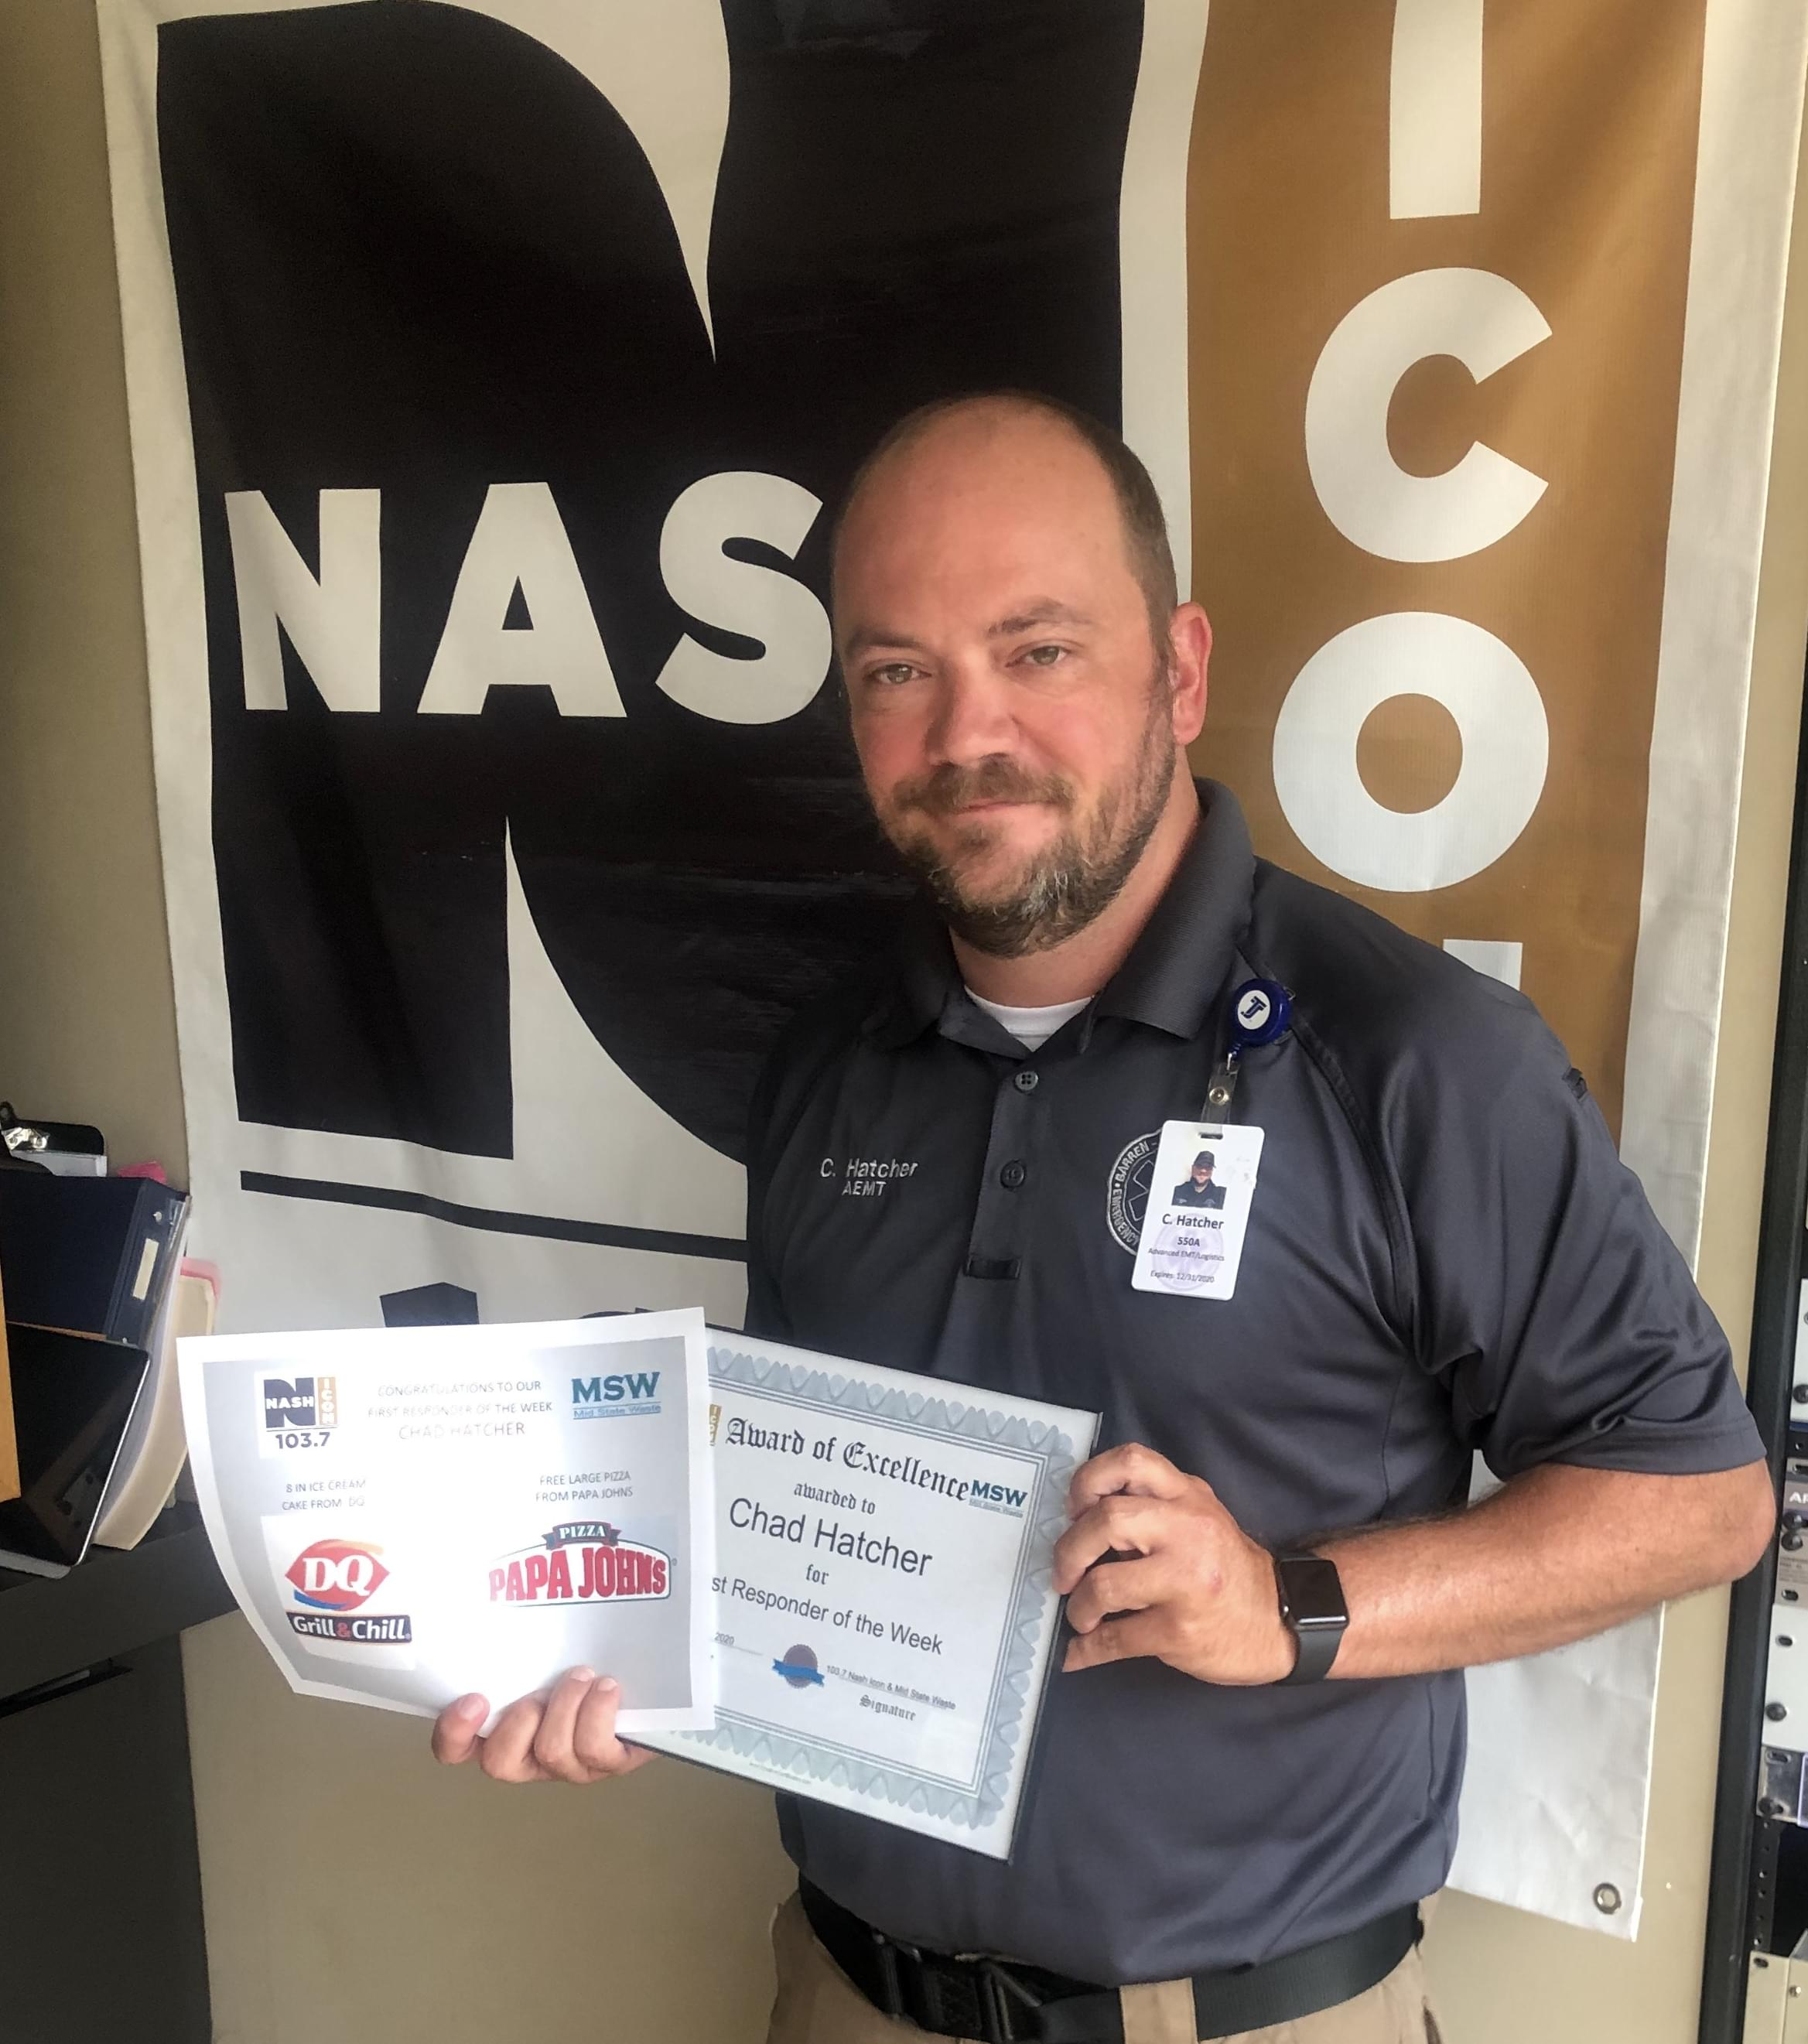 Chad Hatcher is our First Responder of the Week